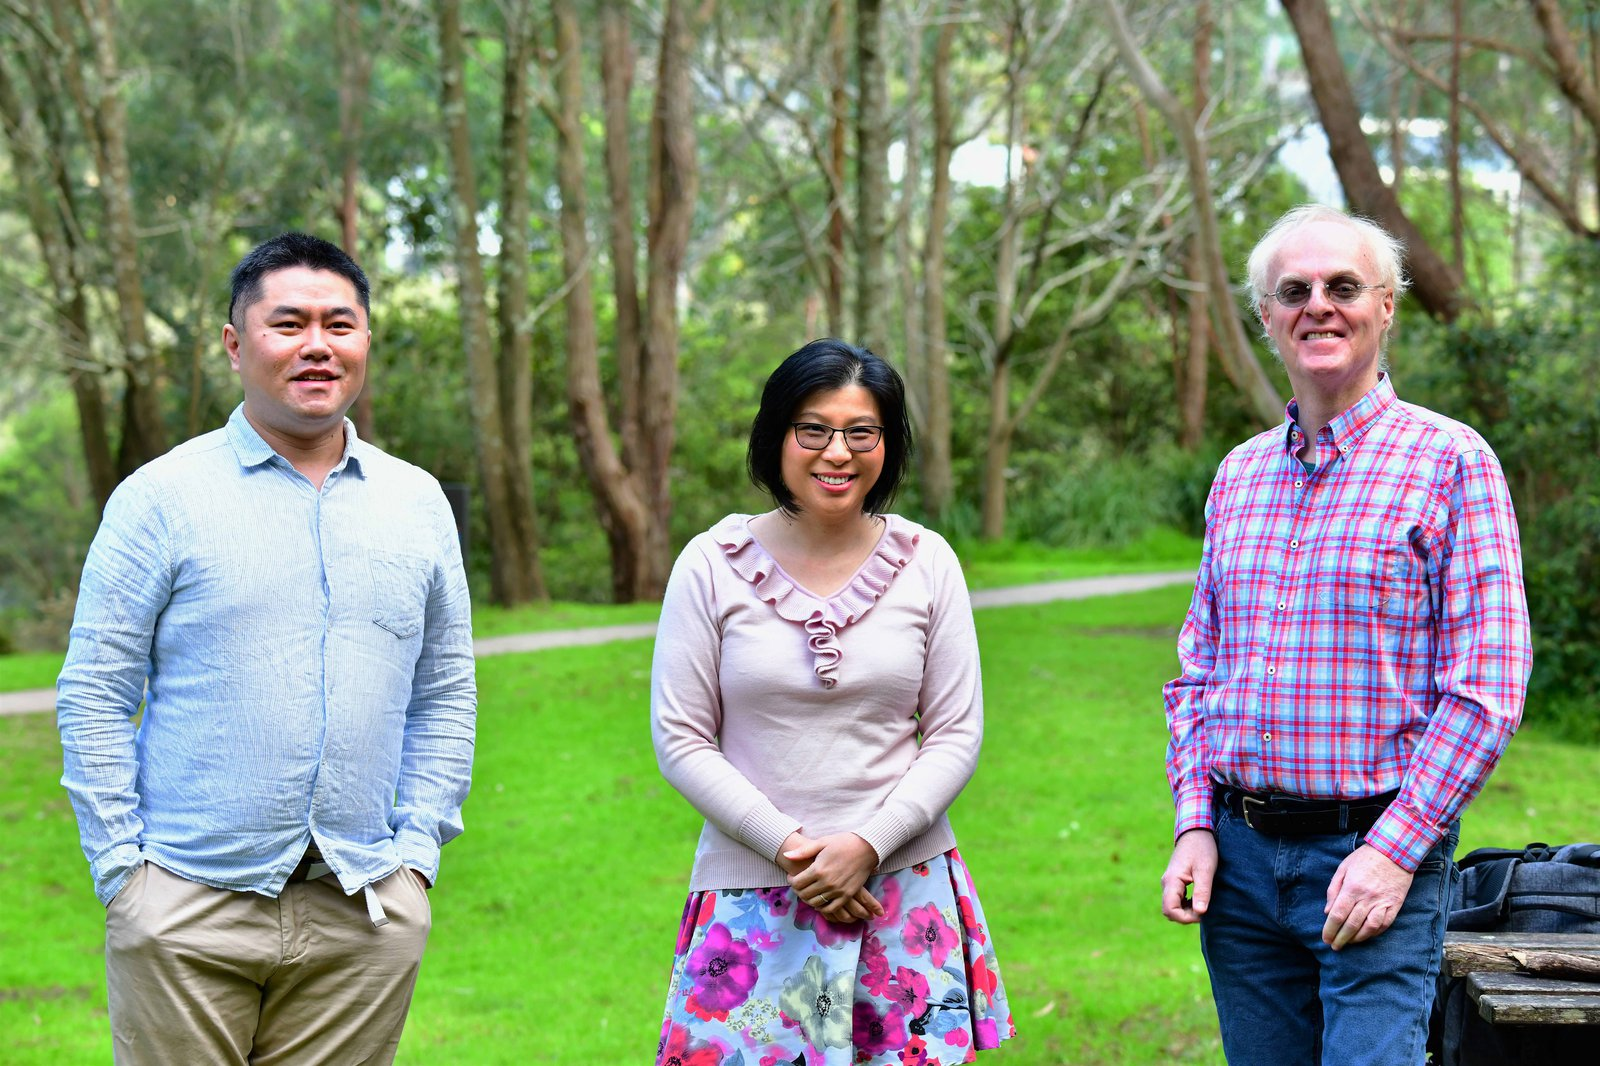 Professor Anita Ho-Baillie, Dr Martin Bucknall and Dr Lei Shi - Finalists, 2021 UNSW Eureka Prize for Scientific Research